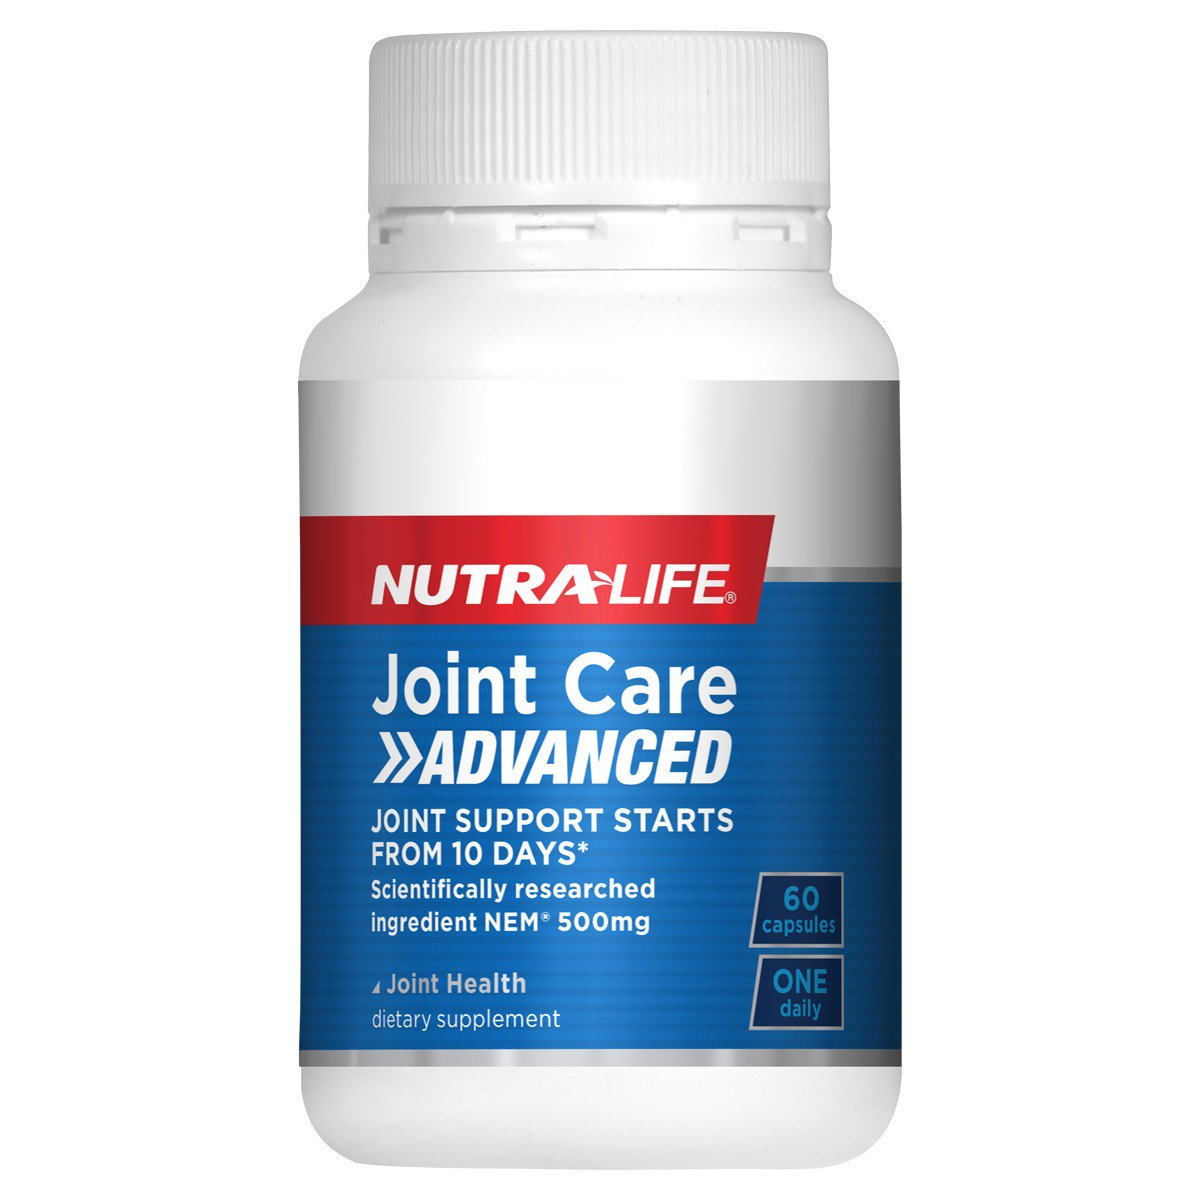 Nutra-life Joint Care Advanced Cap 60